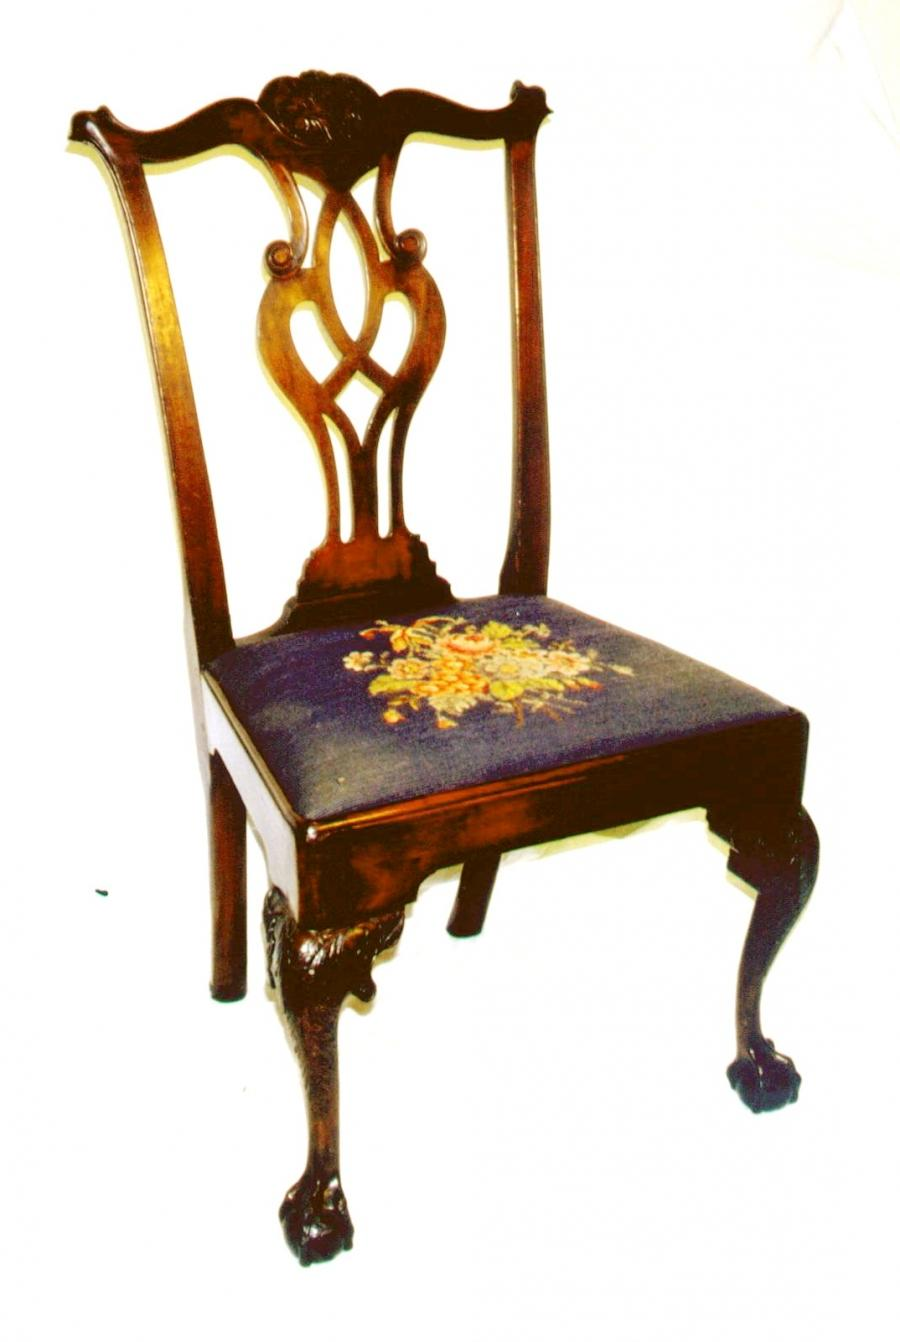 Antique Common Antique chair styles photos